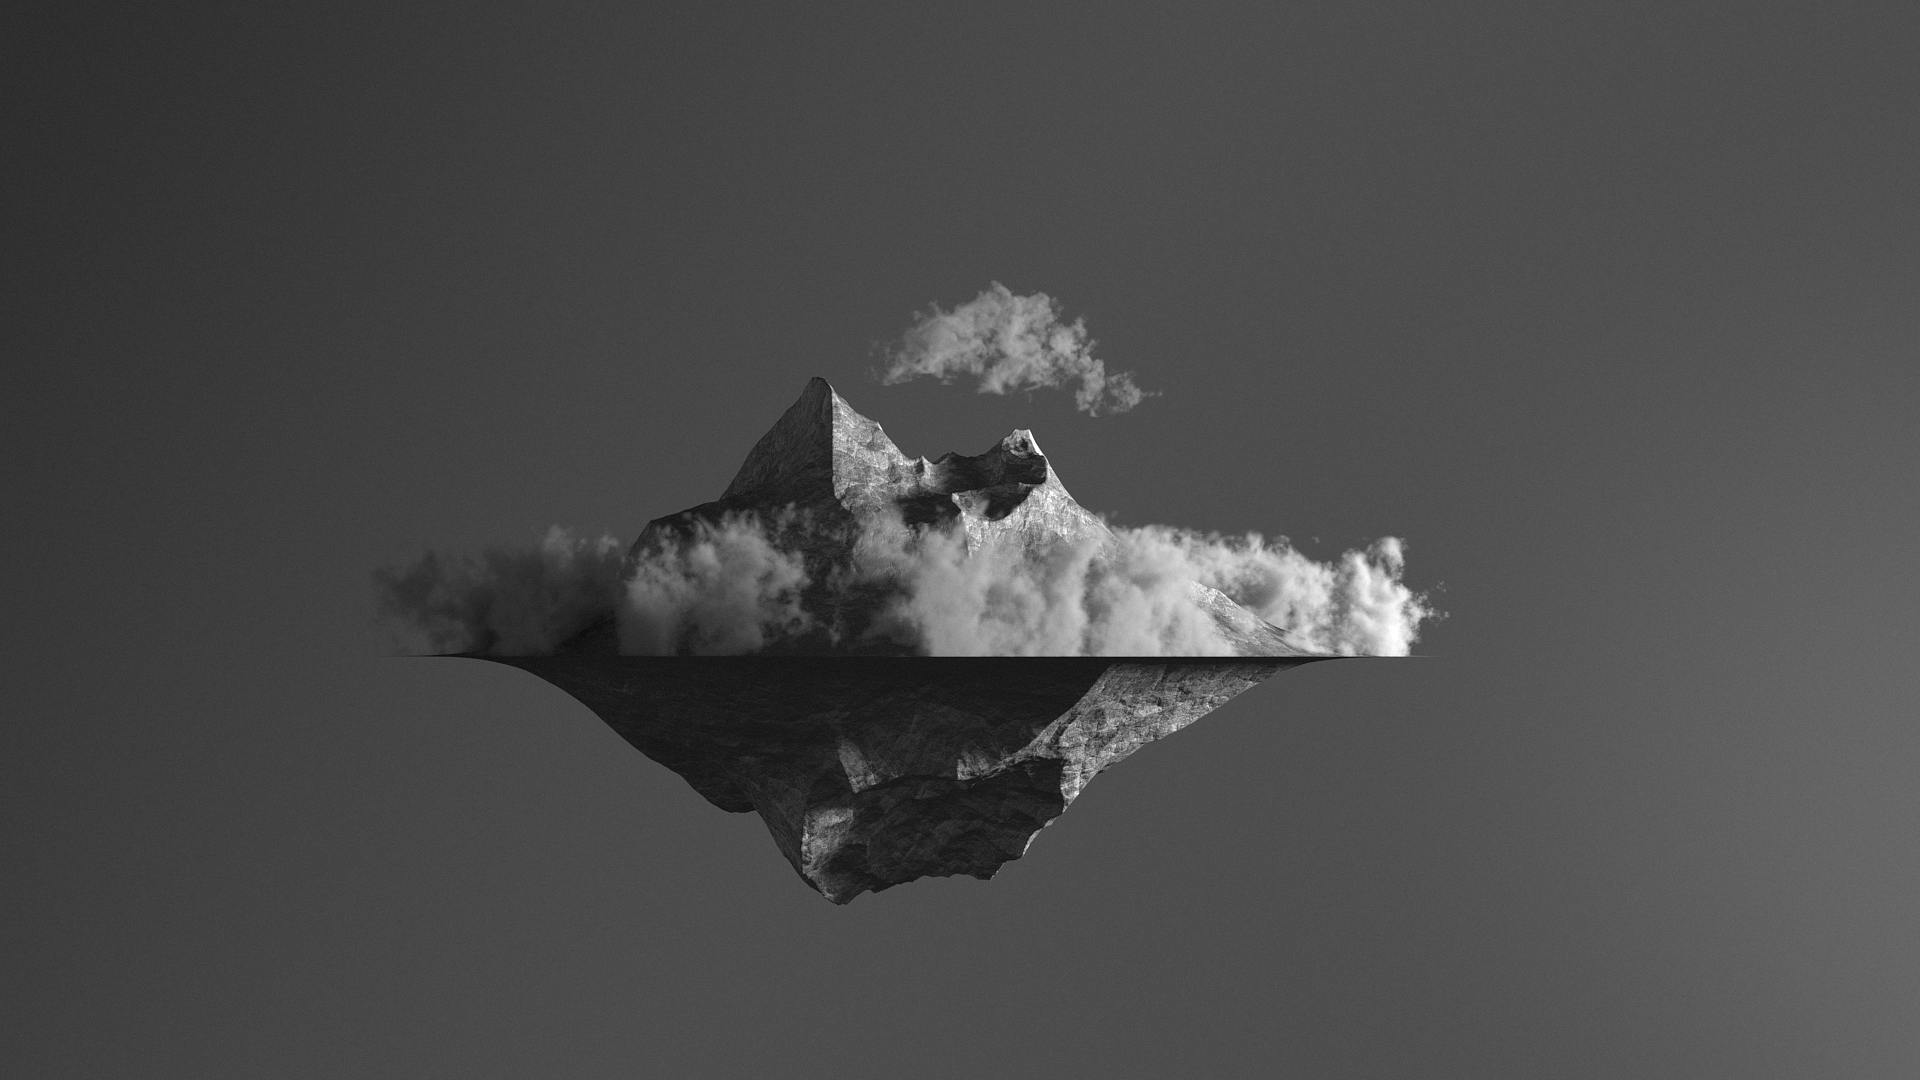 Volume Rendering with Octane Render for Cinema 4D - Volume Generator - Floating Island #2